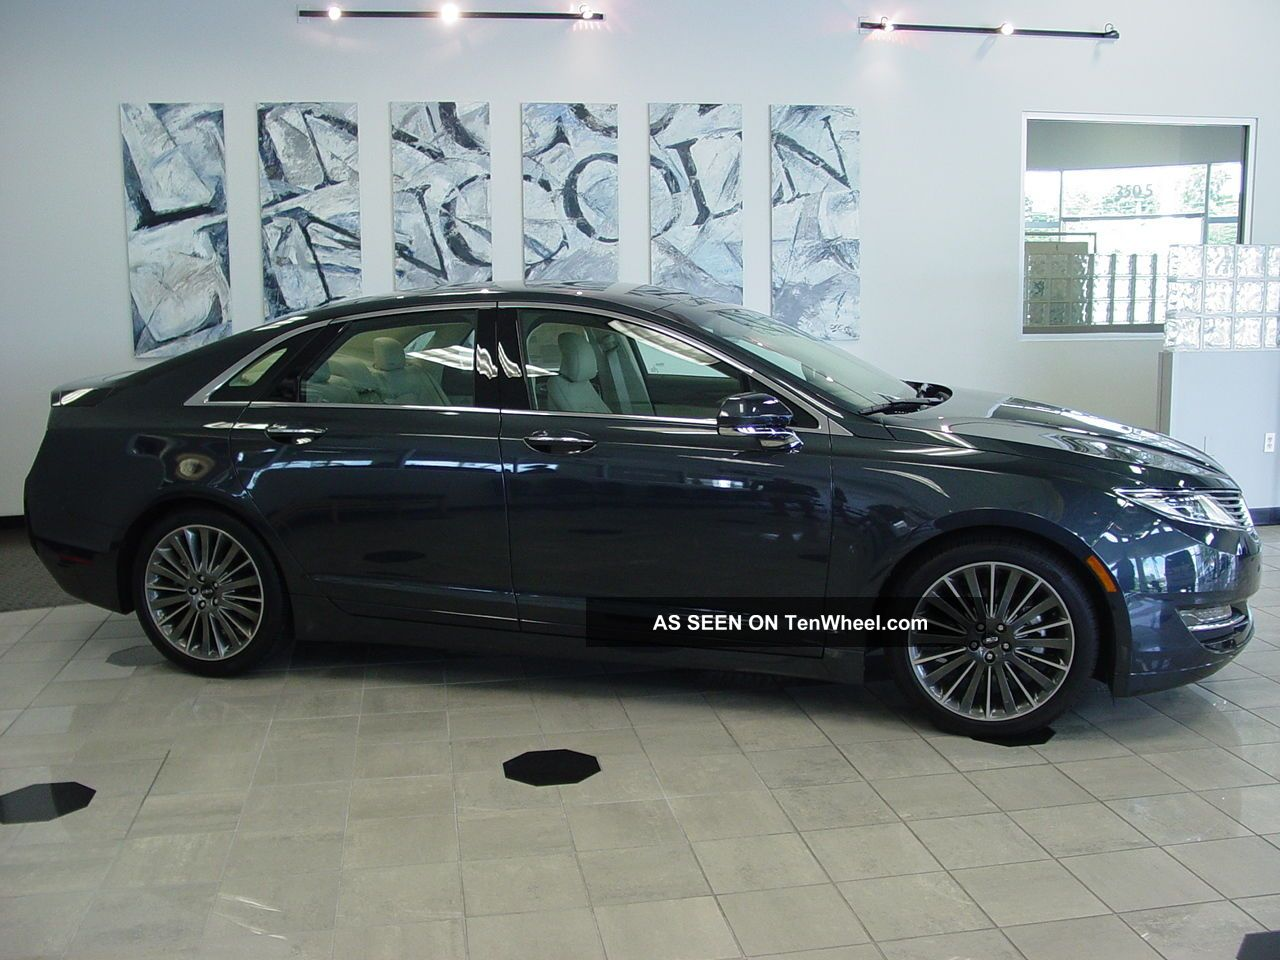 2013 Lincoln Mkz MKZ/Zephyr photo